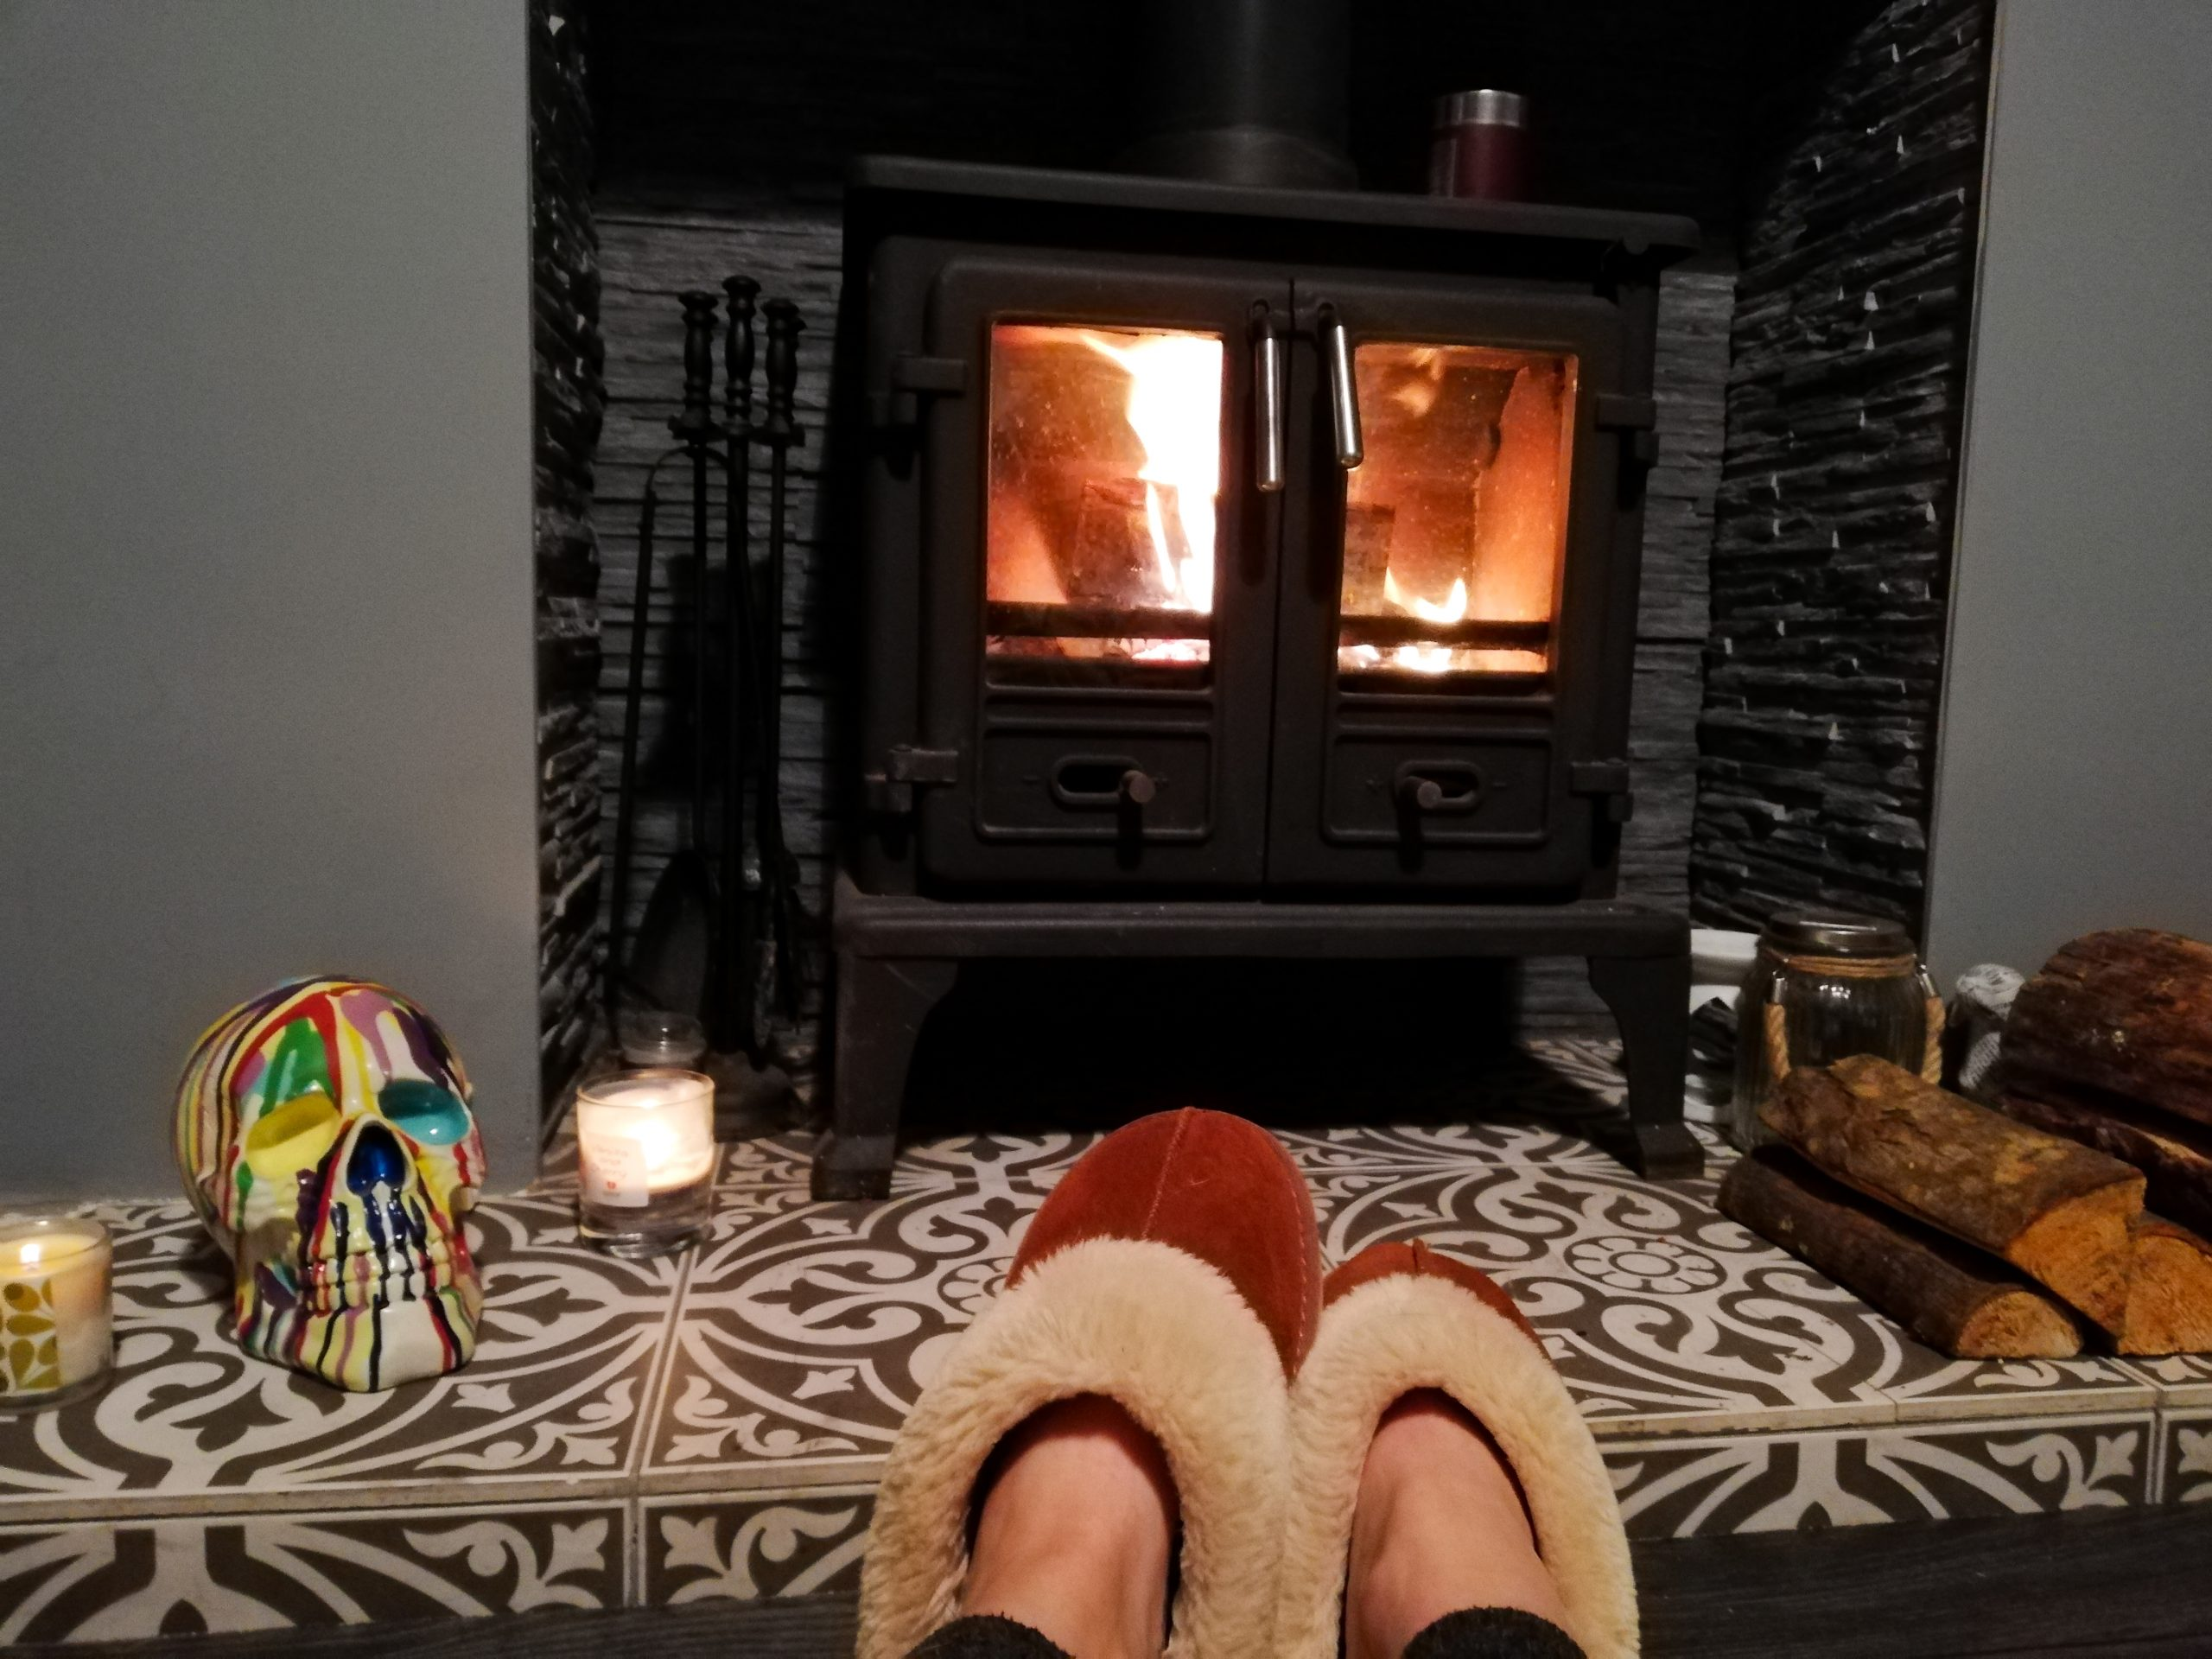 eShores Romantic Night In Log Burner